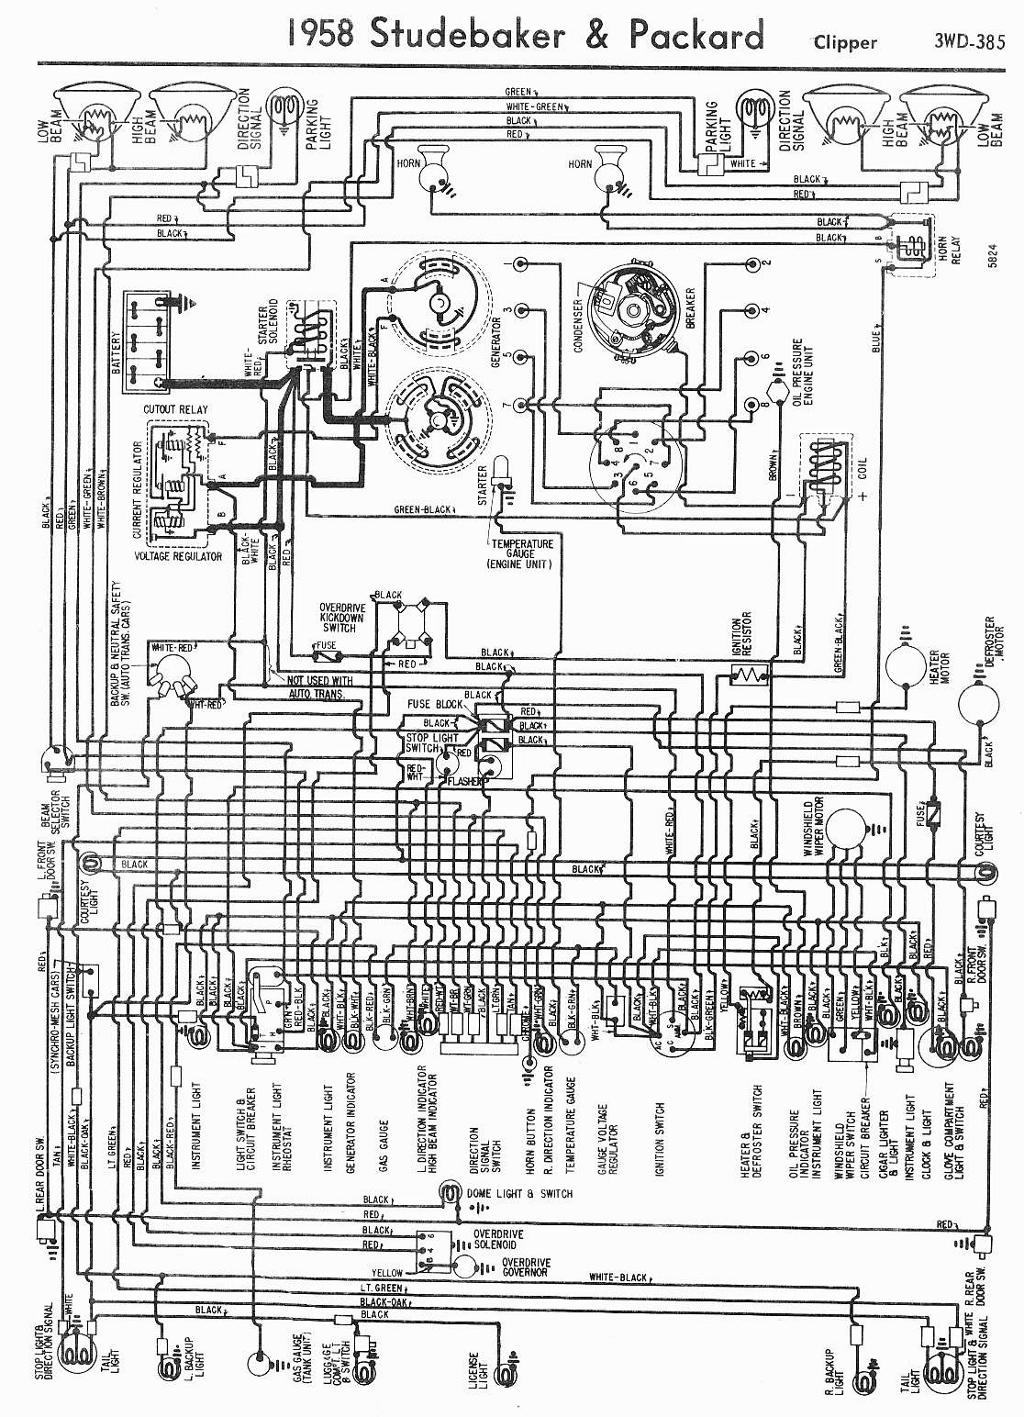 51 Chevy Wiring Diagram - Trusted Wiring Diagram